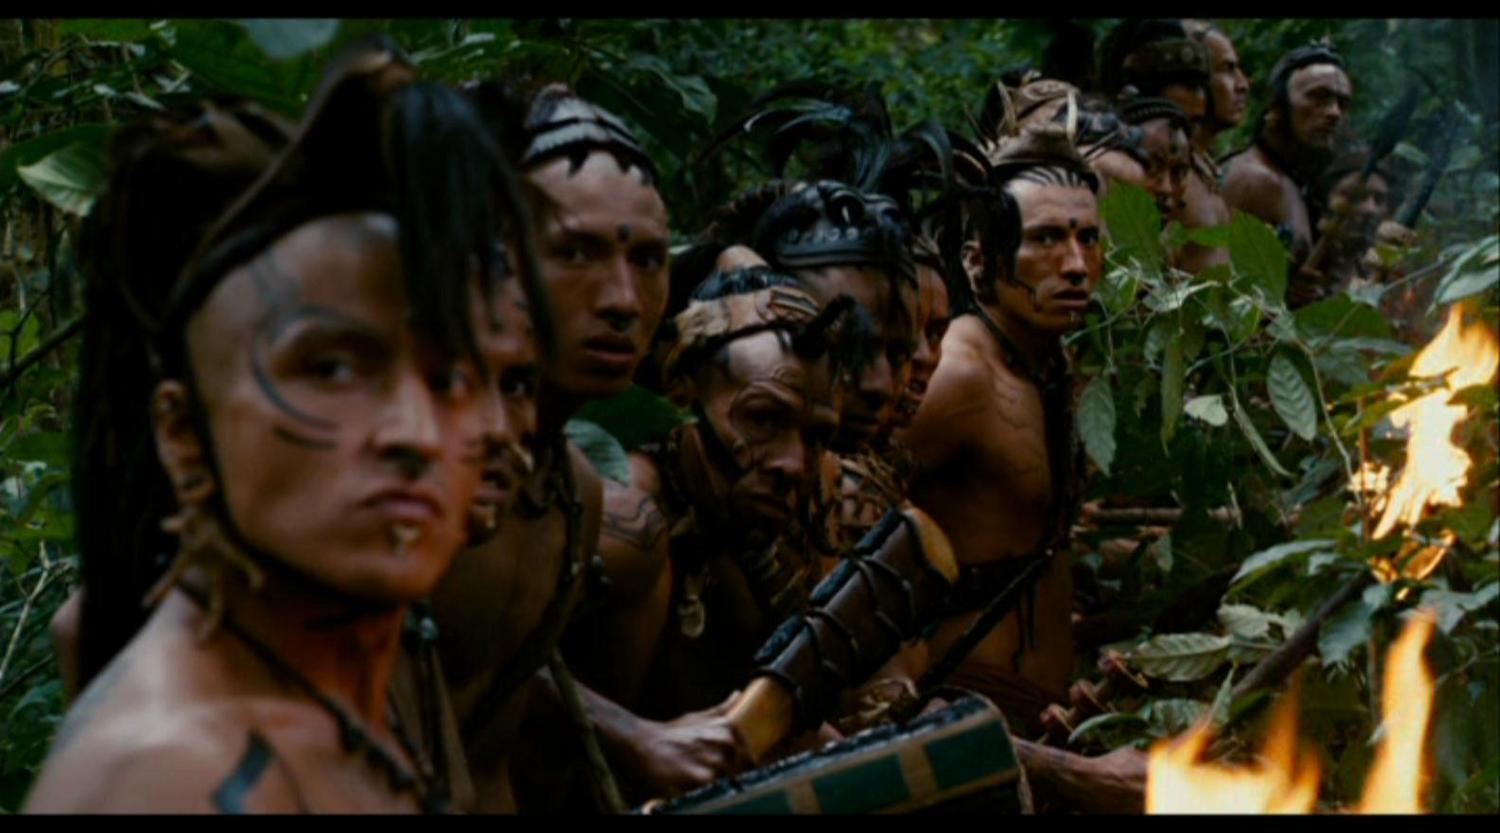 dbq on apocalypto Tourism planning essay (business plan writers in springfield mo) we need more episodes like s2e6 the vignettes were like an eye-opening essay/commentary brilliant storytelling #masterofnone.